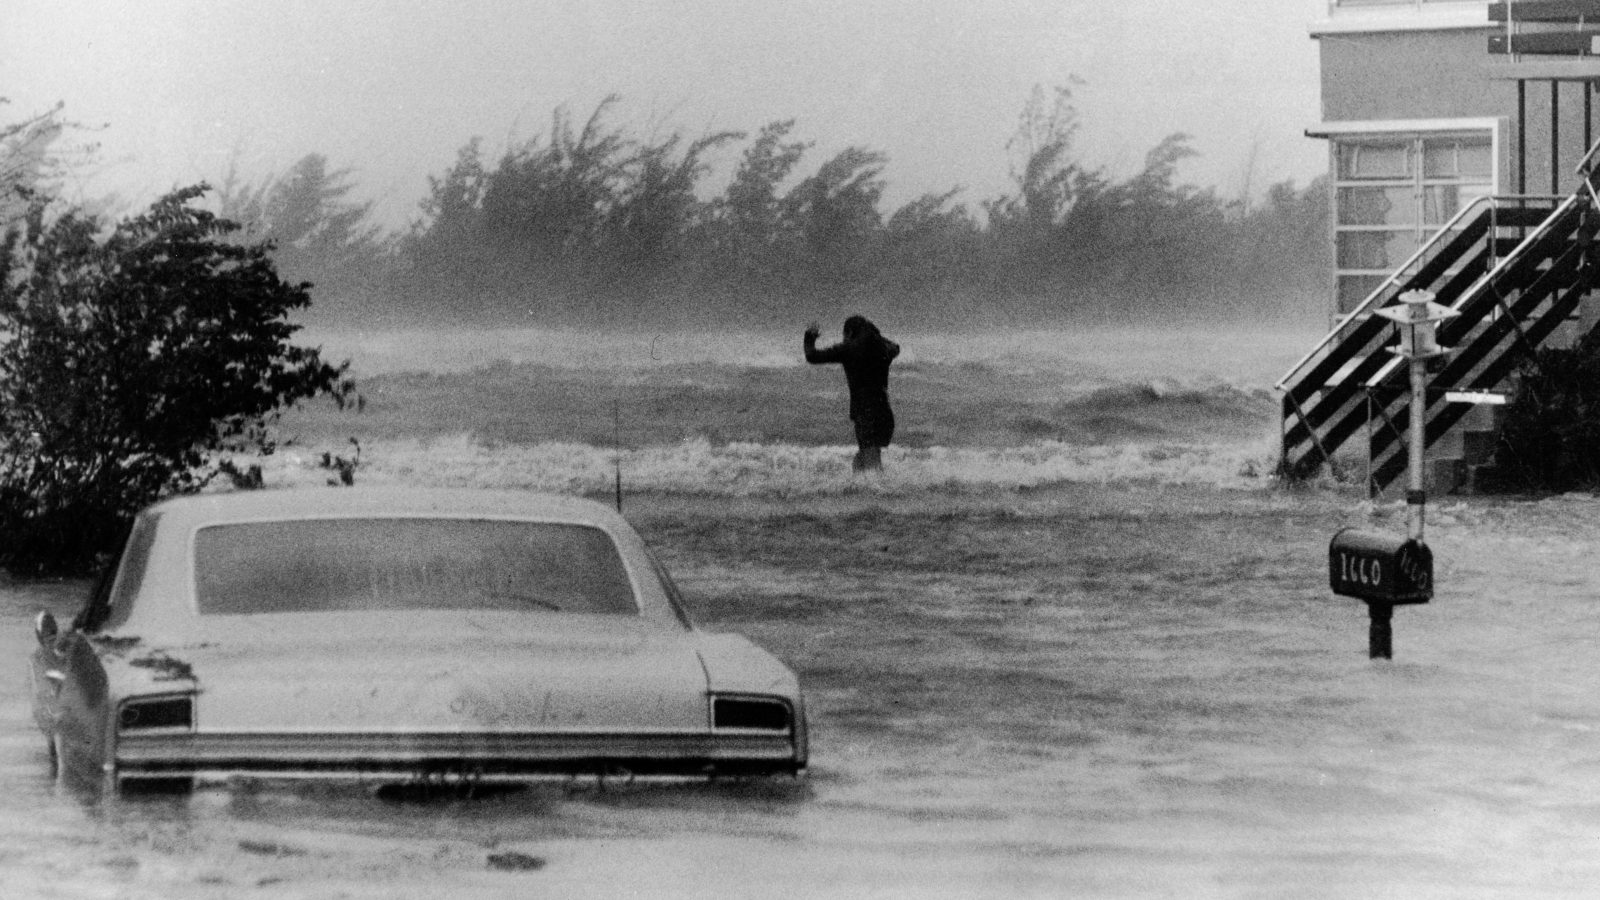 A black and white photo shows a submerged car and windblown trees as a distant figure braces against the wind.